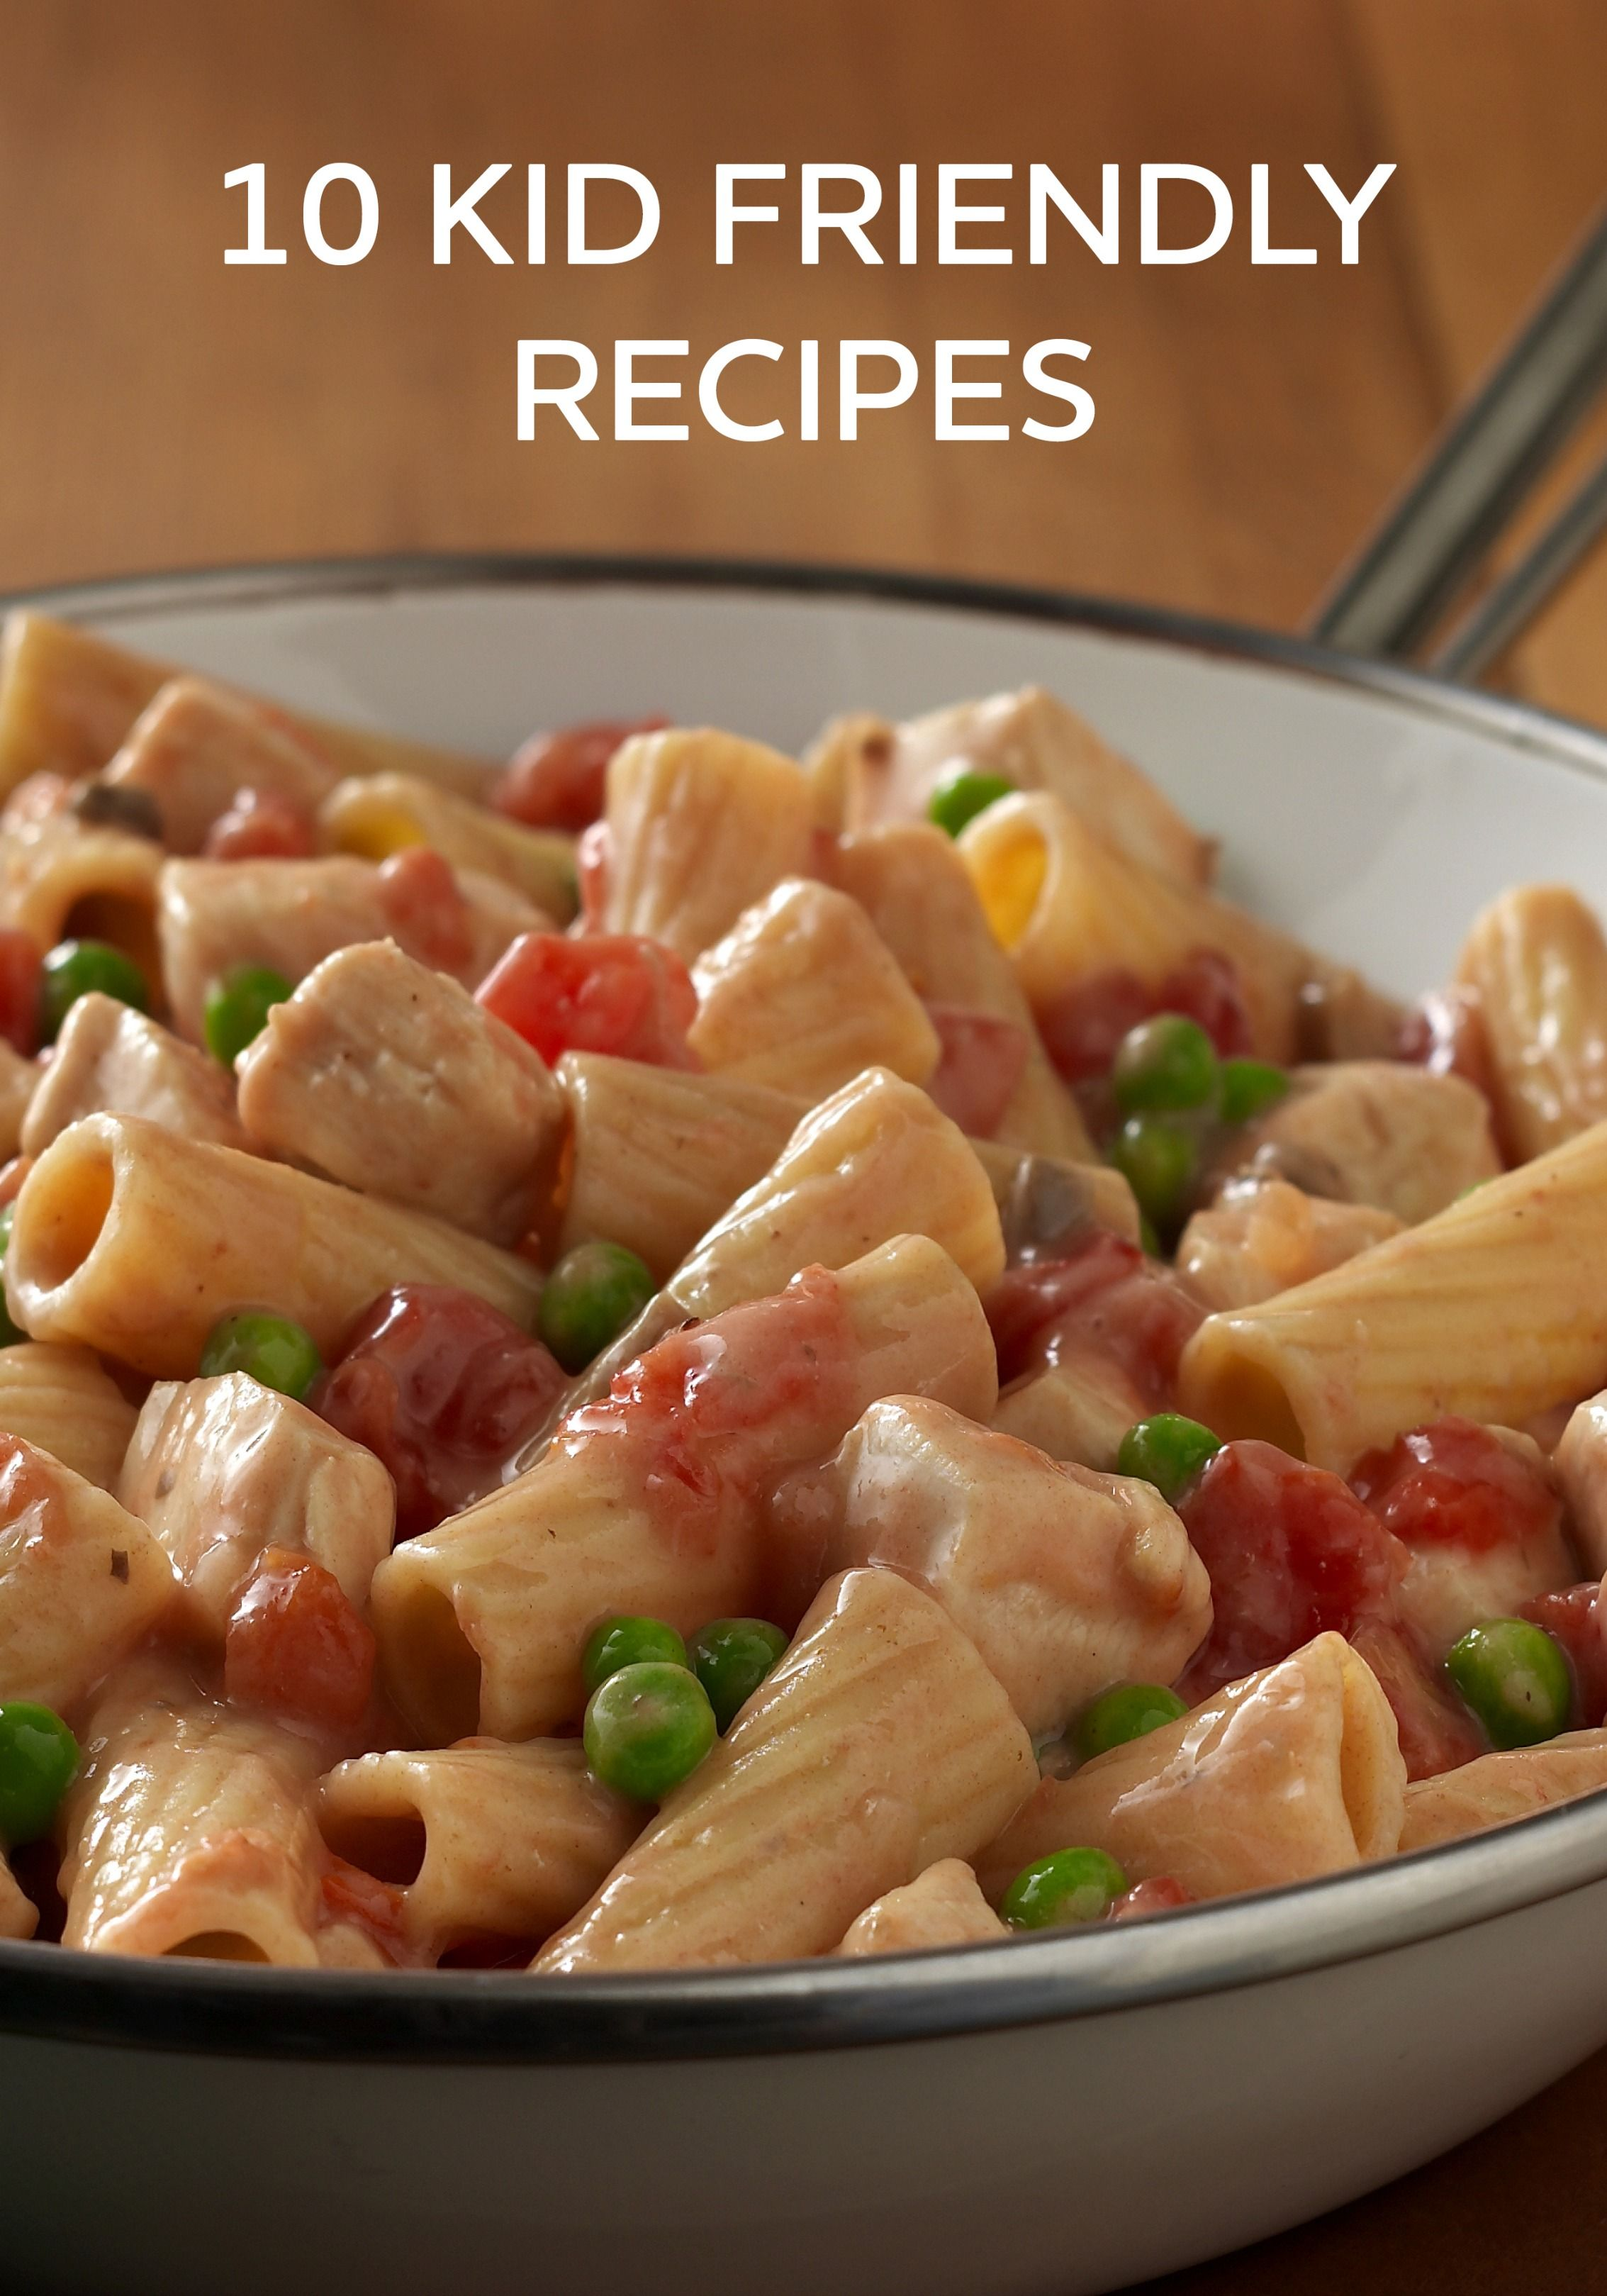 Youll please the whole family with these easy dinner ideas our kid youll please the whole family with these easy dinner ideas our kid friendly recipes are delicious and simple to prepare forumfinder Choice Image